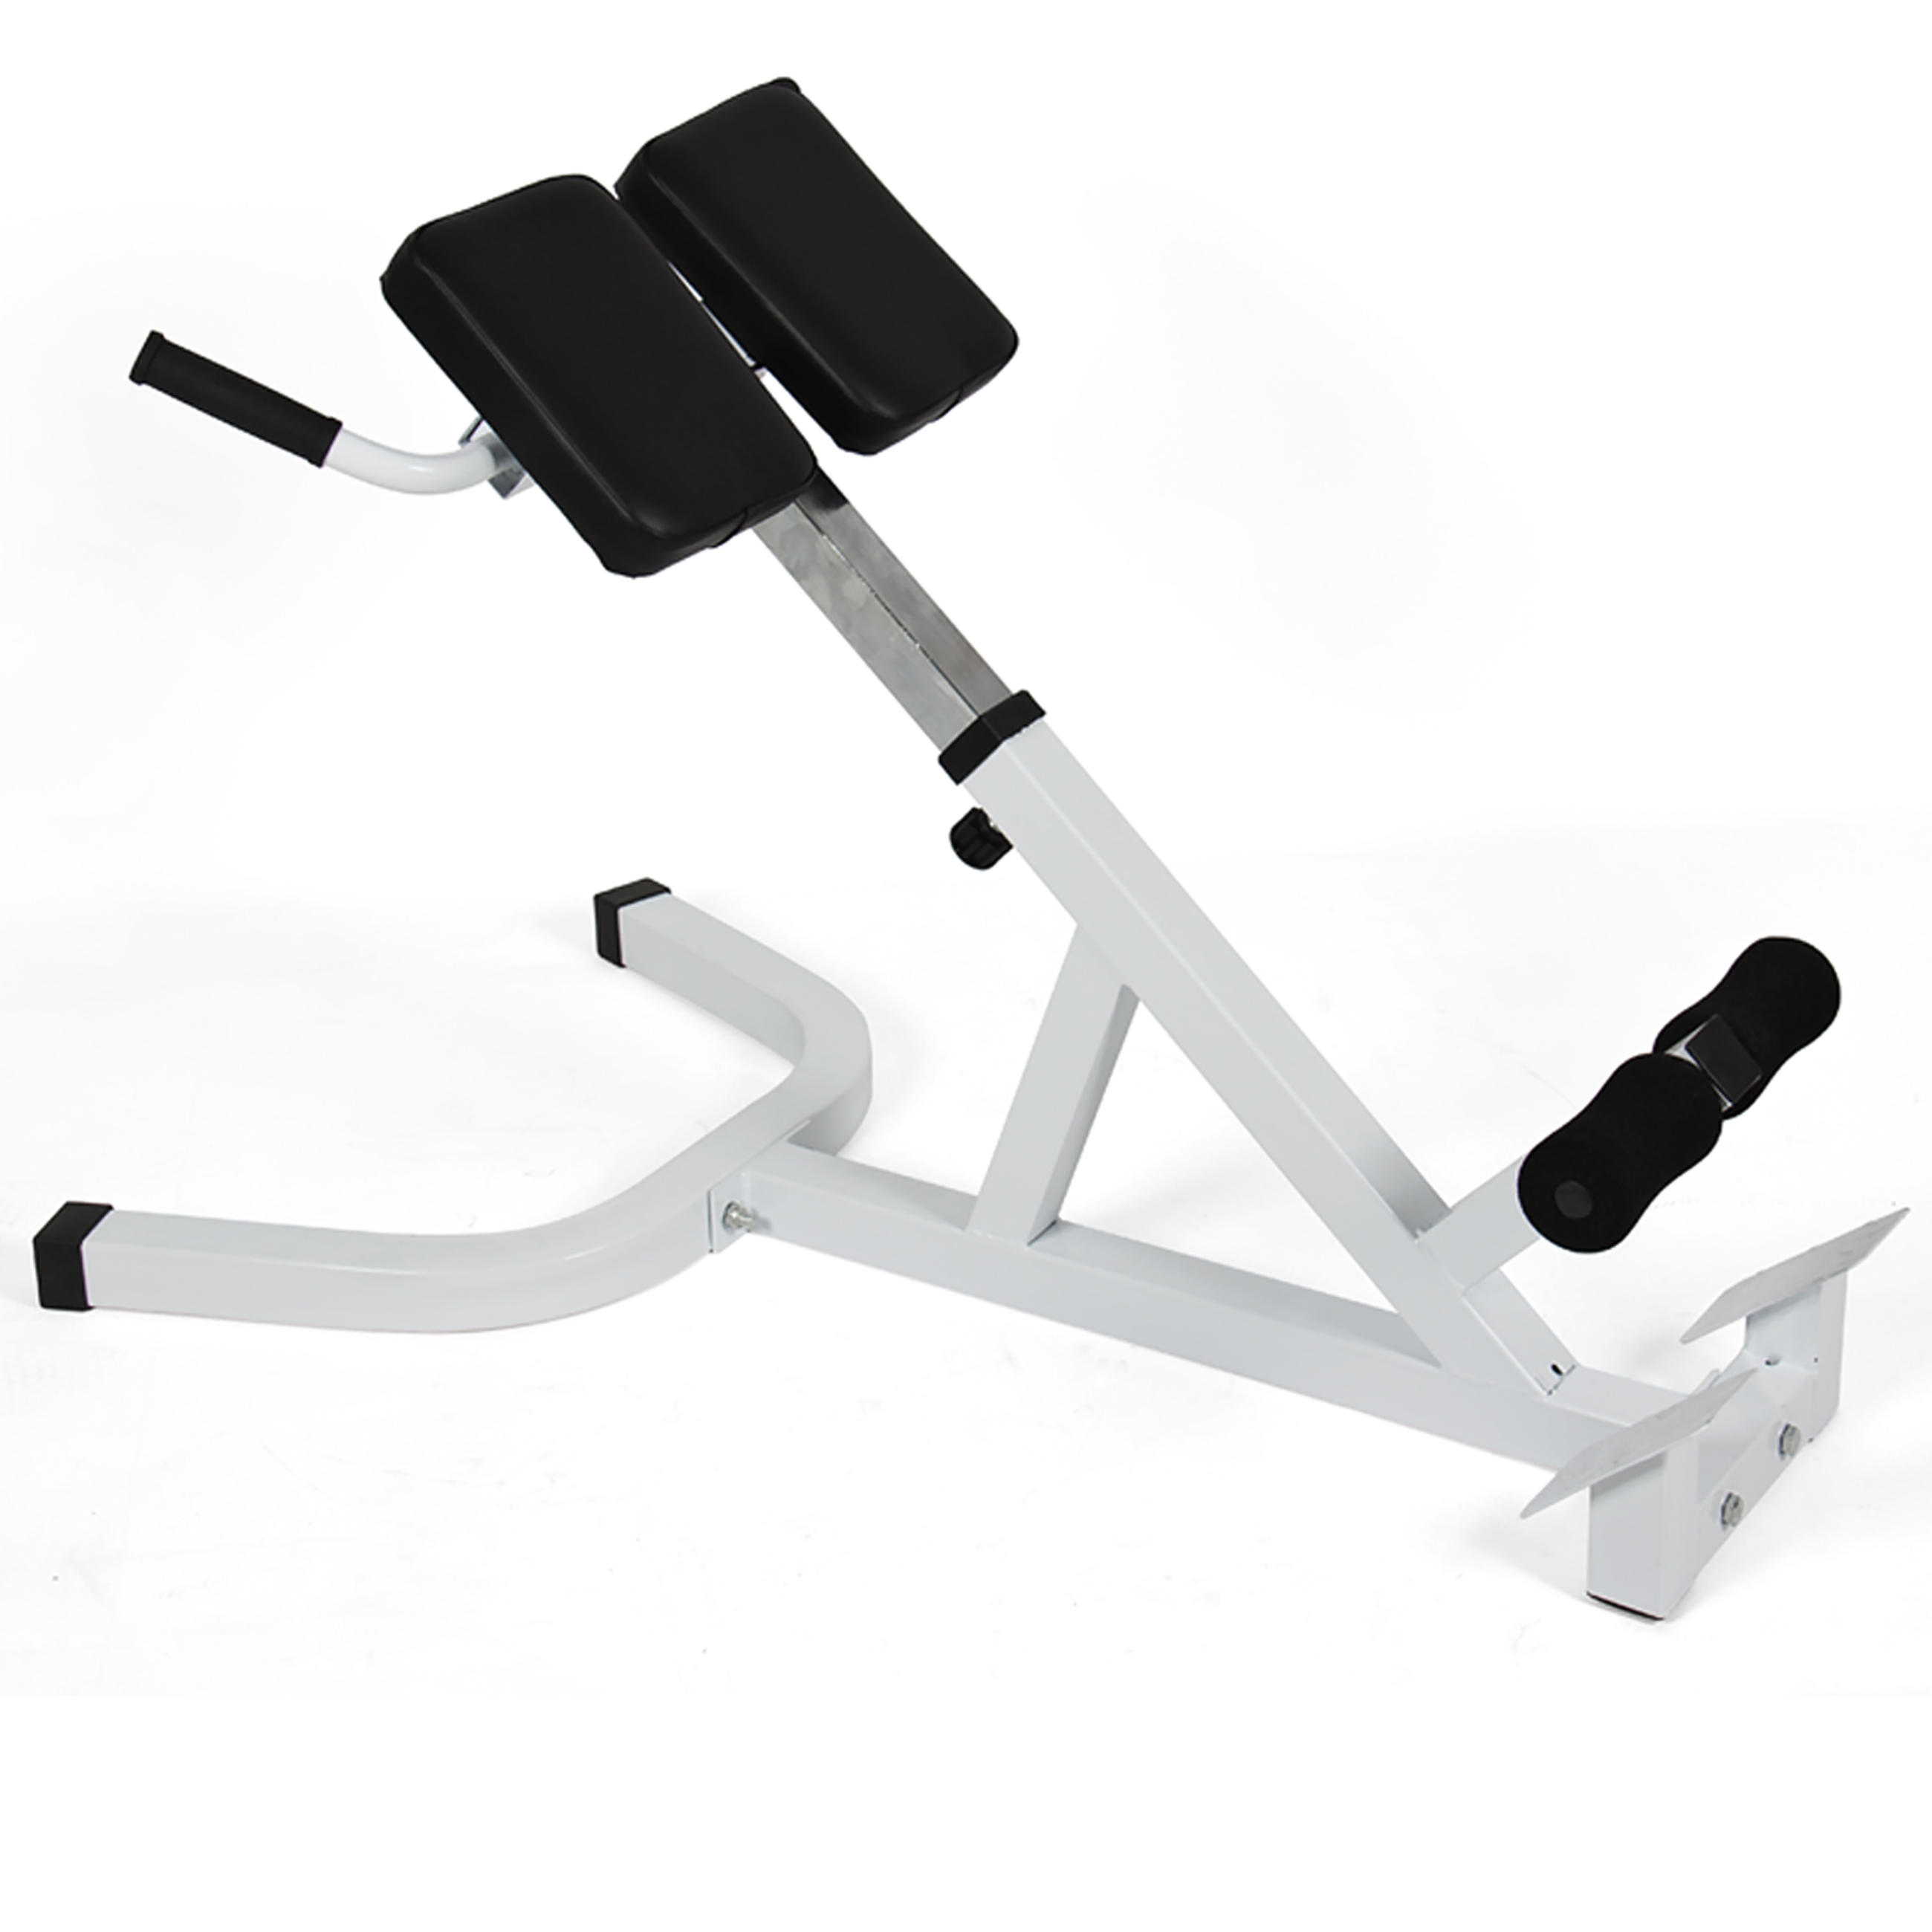 Best Choice Products Adjustable Roman Chair Ab Bench w/ 45 Degree Hyperextension for Gym, Training, Exercise - Black/Gray